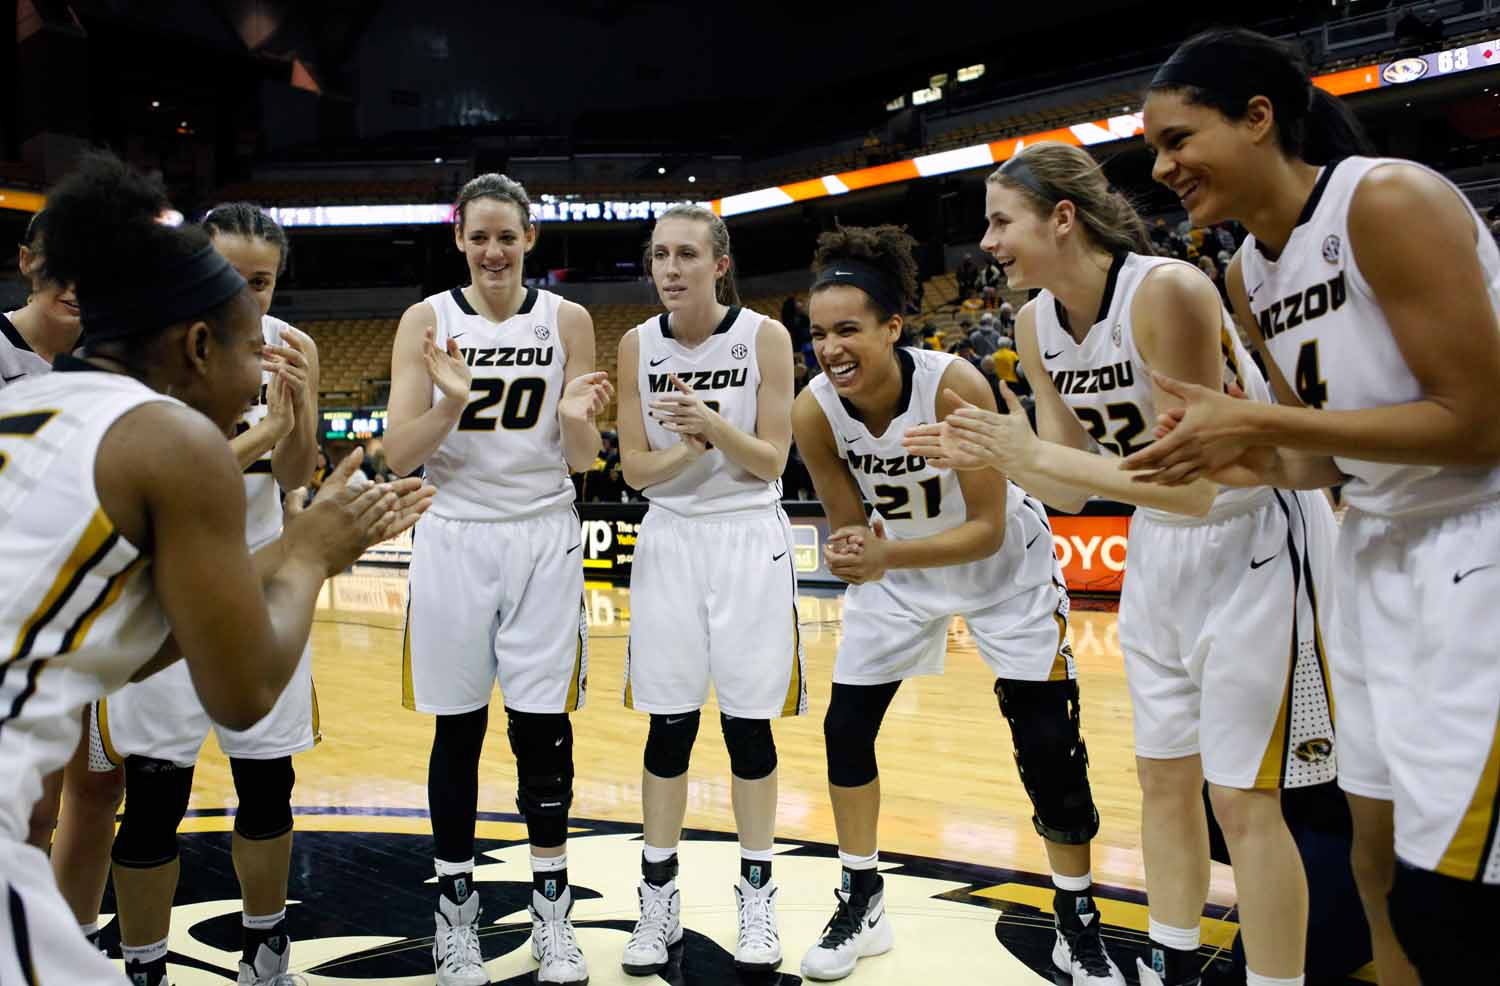 The Mizzou Tigers celebrate together mid-court following the conclusion of their 63-52 win over Alabama Thursday evening, Feb. 11, 2016.